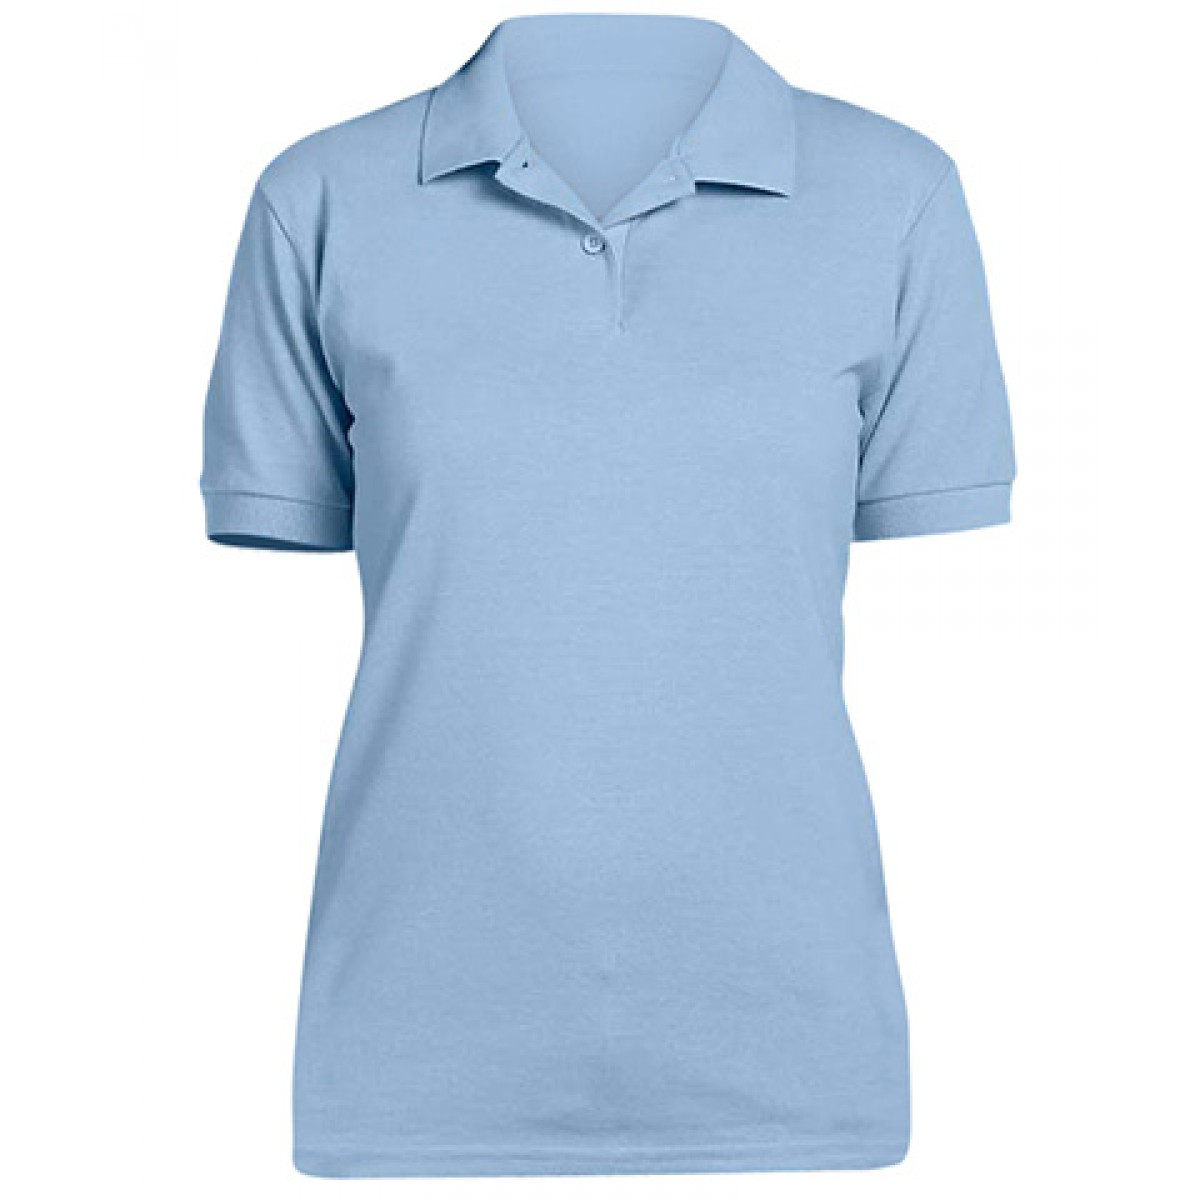 Ladies' 6.5 oz. Piqué Sport Shirt-Blue-XL